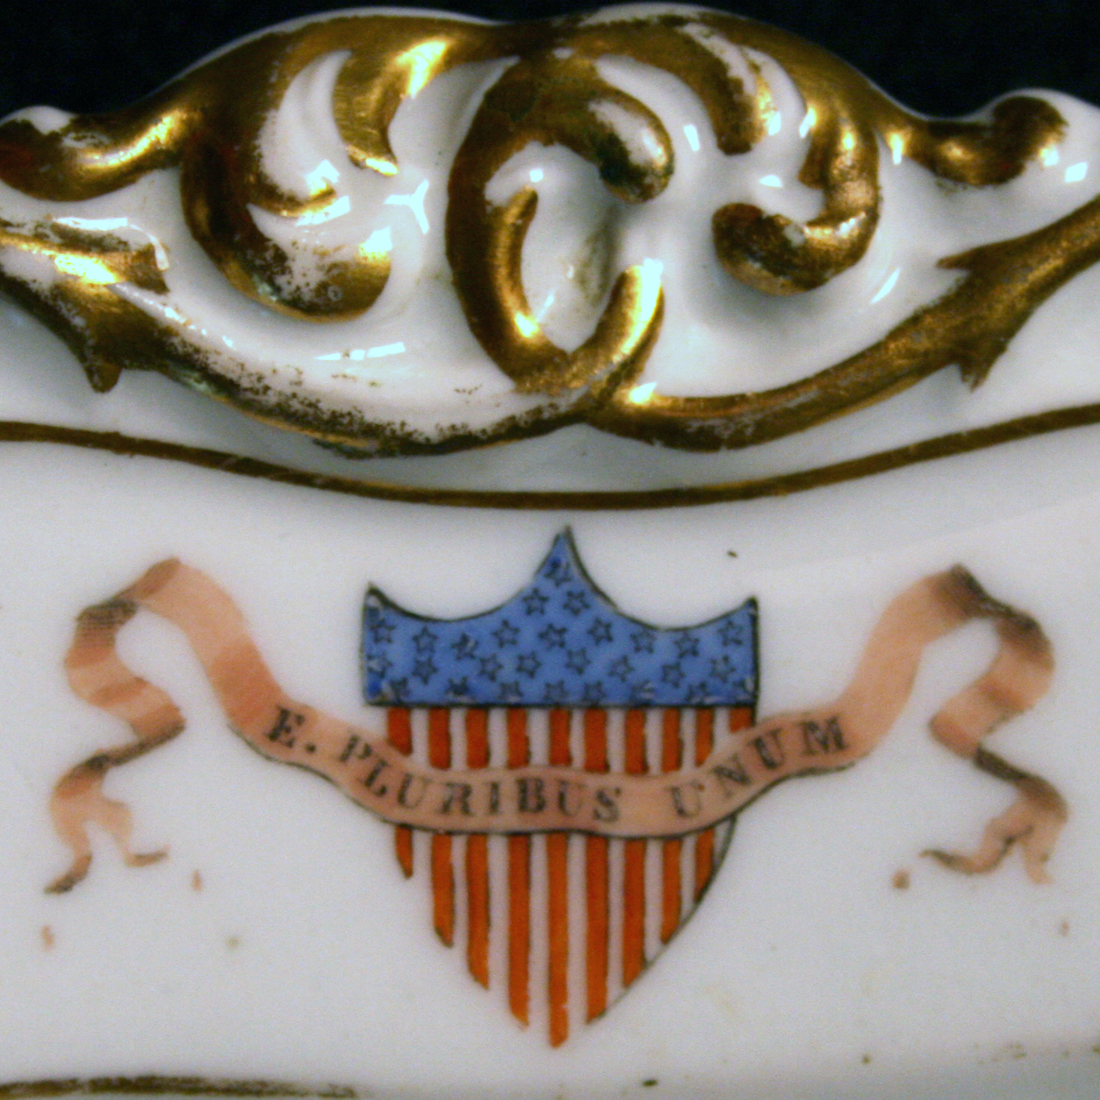 james k. polk white house china raleigh degeer amyx offcial white house china the raleigh degeer amyx collection presidential china the american heritage collection 